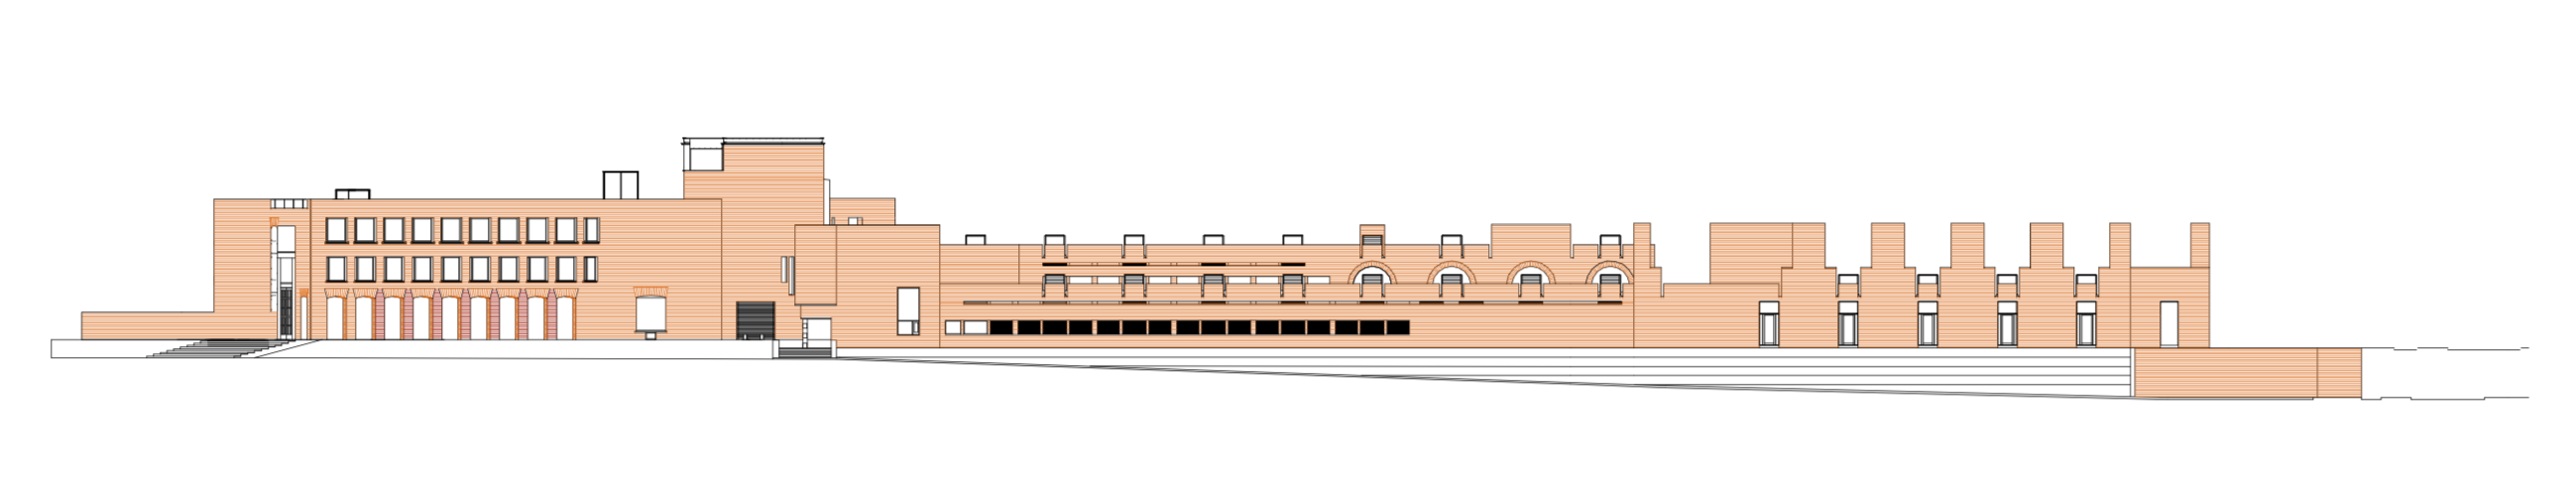 02 Elevation drawing 1